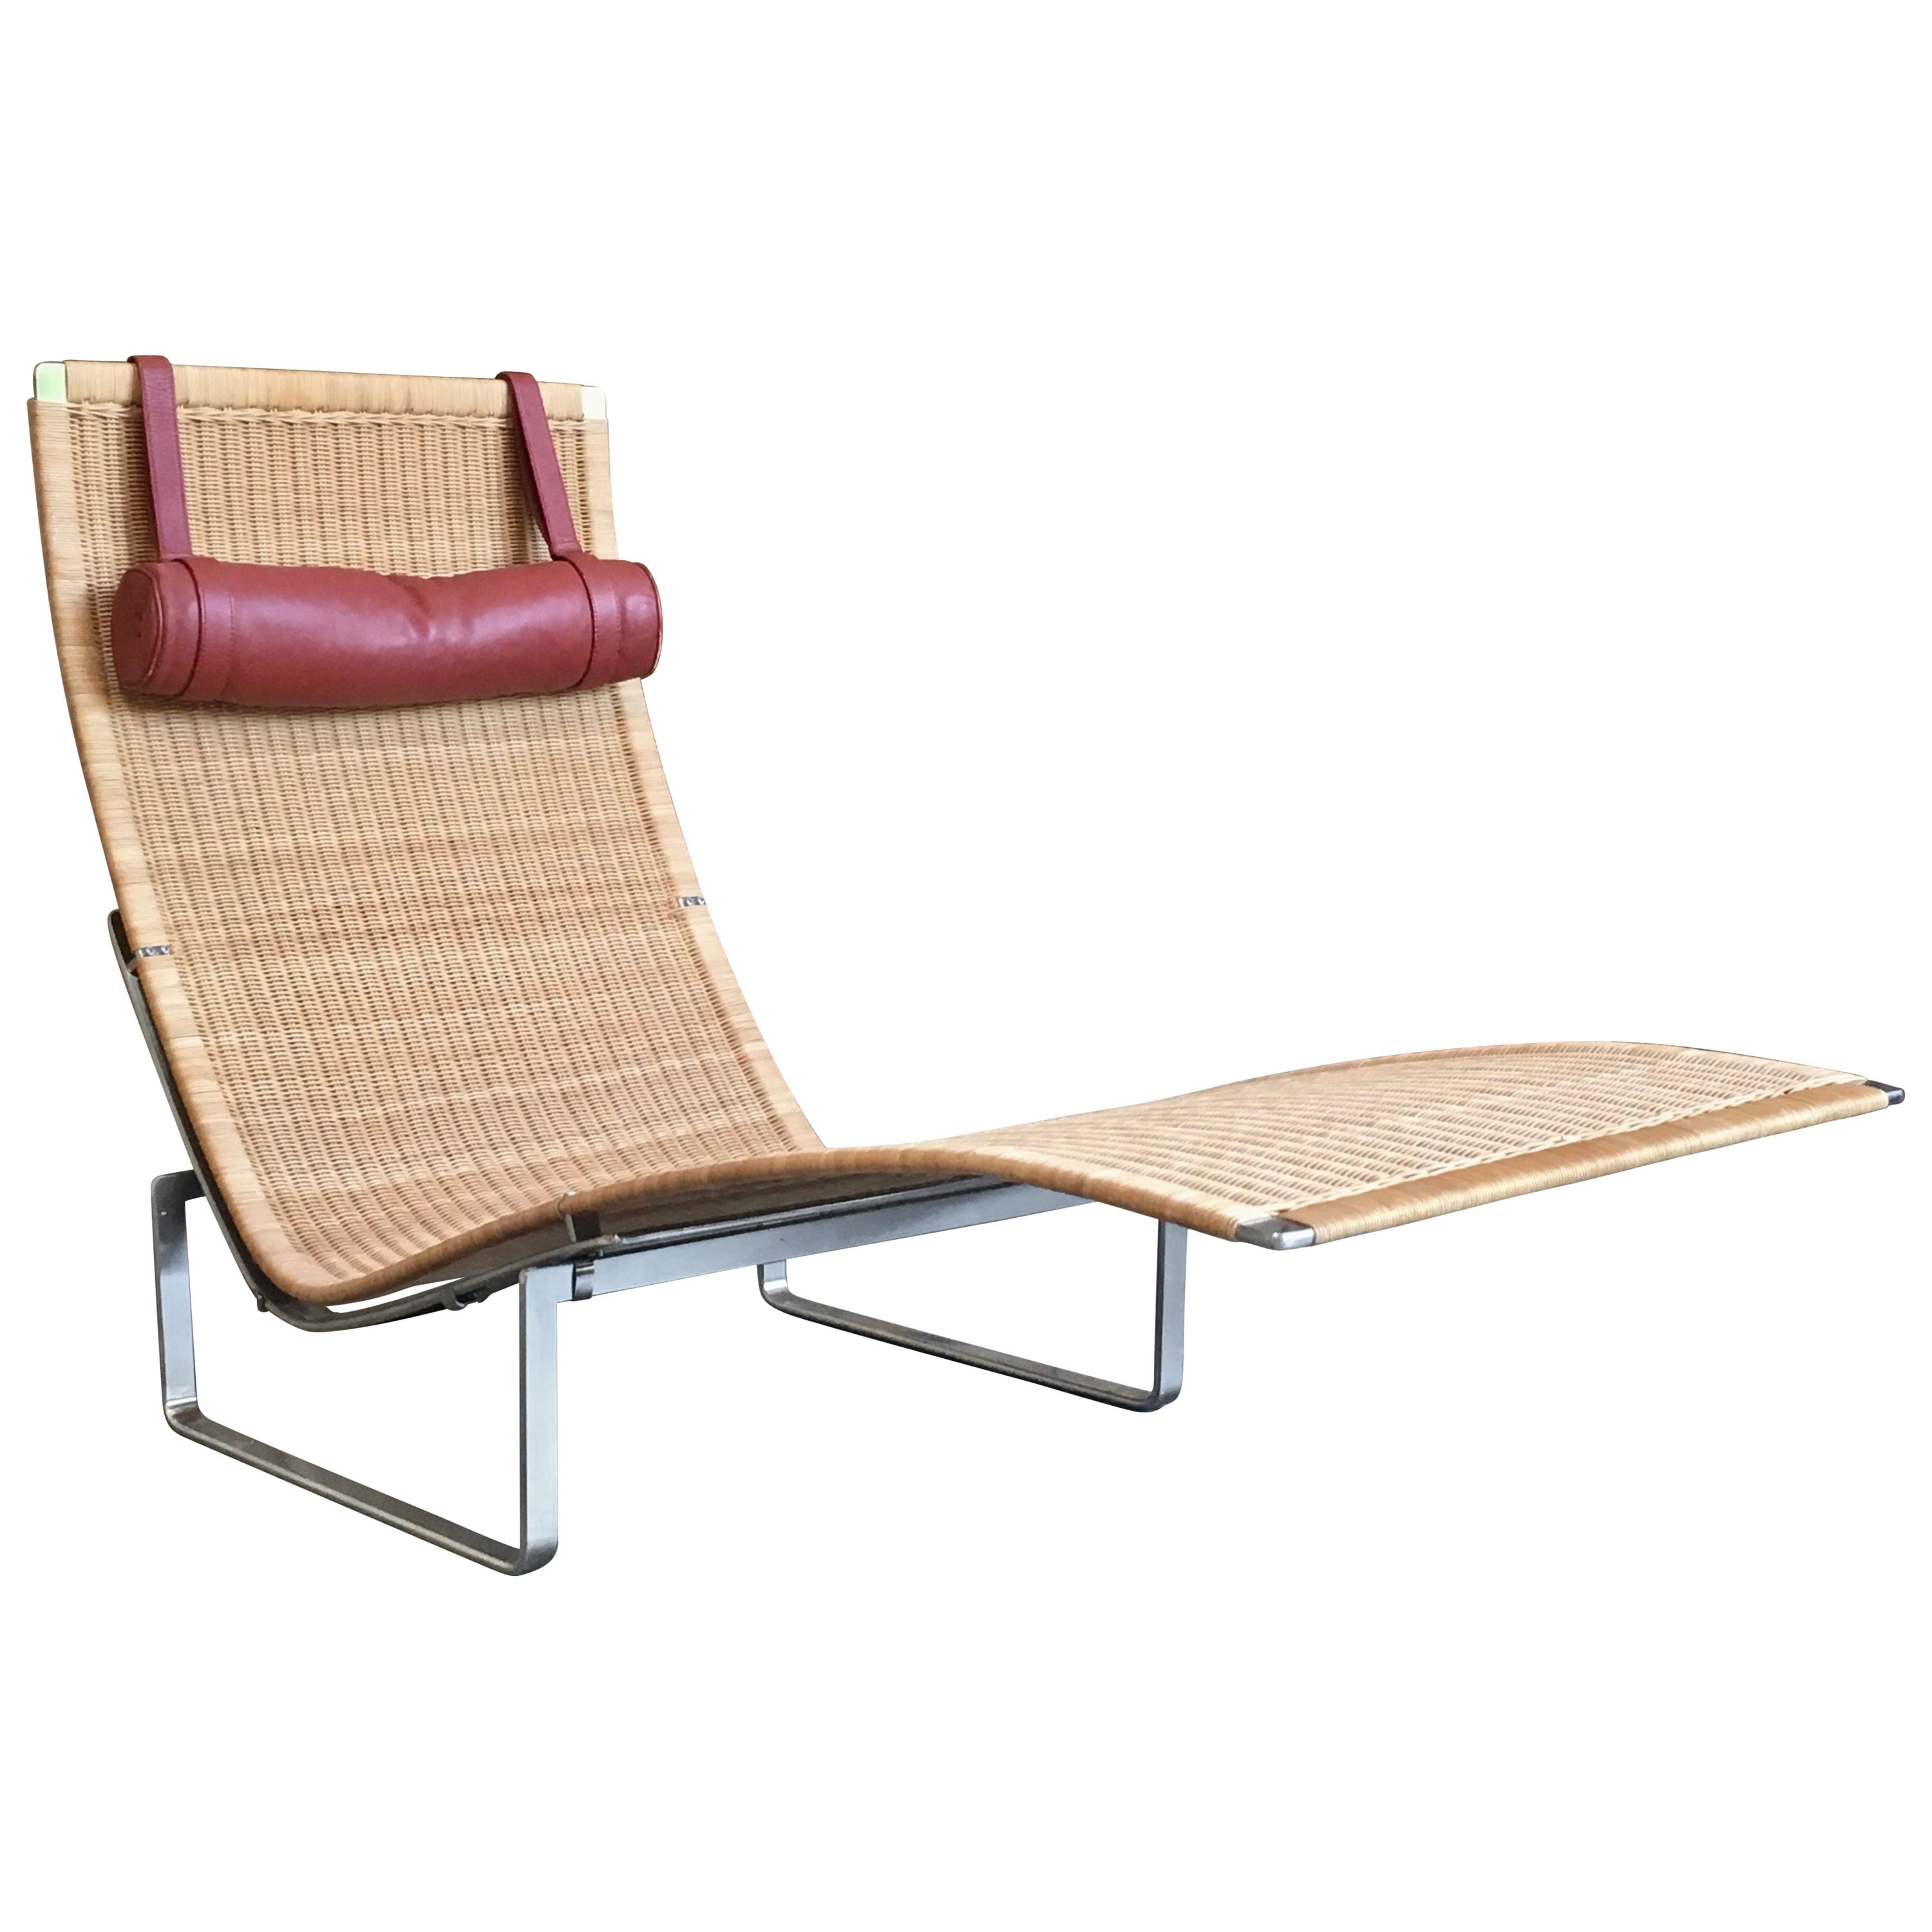 Chaise Seat Pk Longue With Kjærholm For Hansen 24 Wicker Fritz Poul TF1lcuK3J